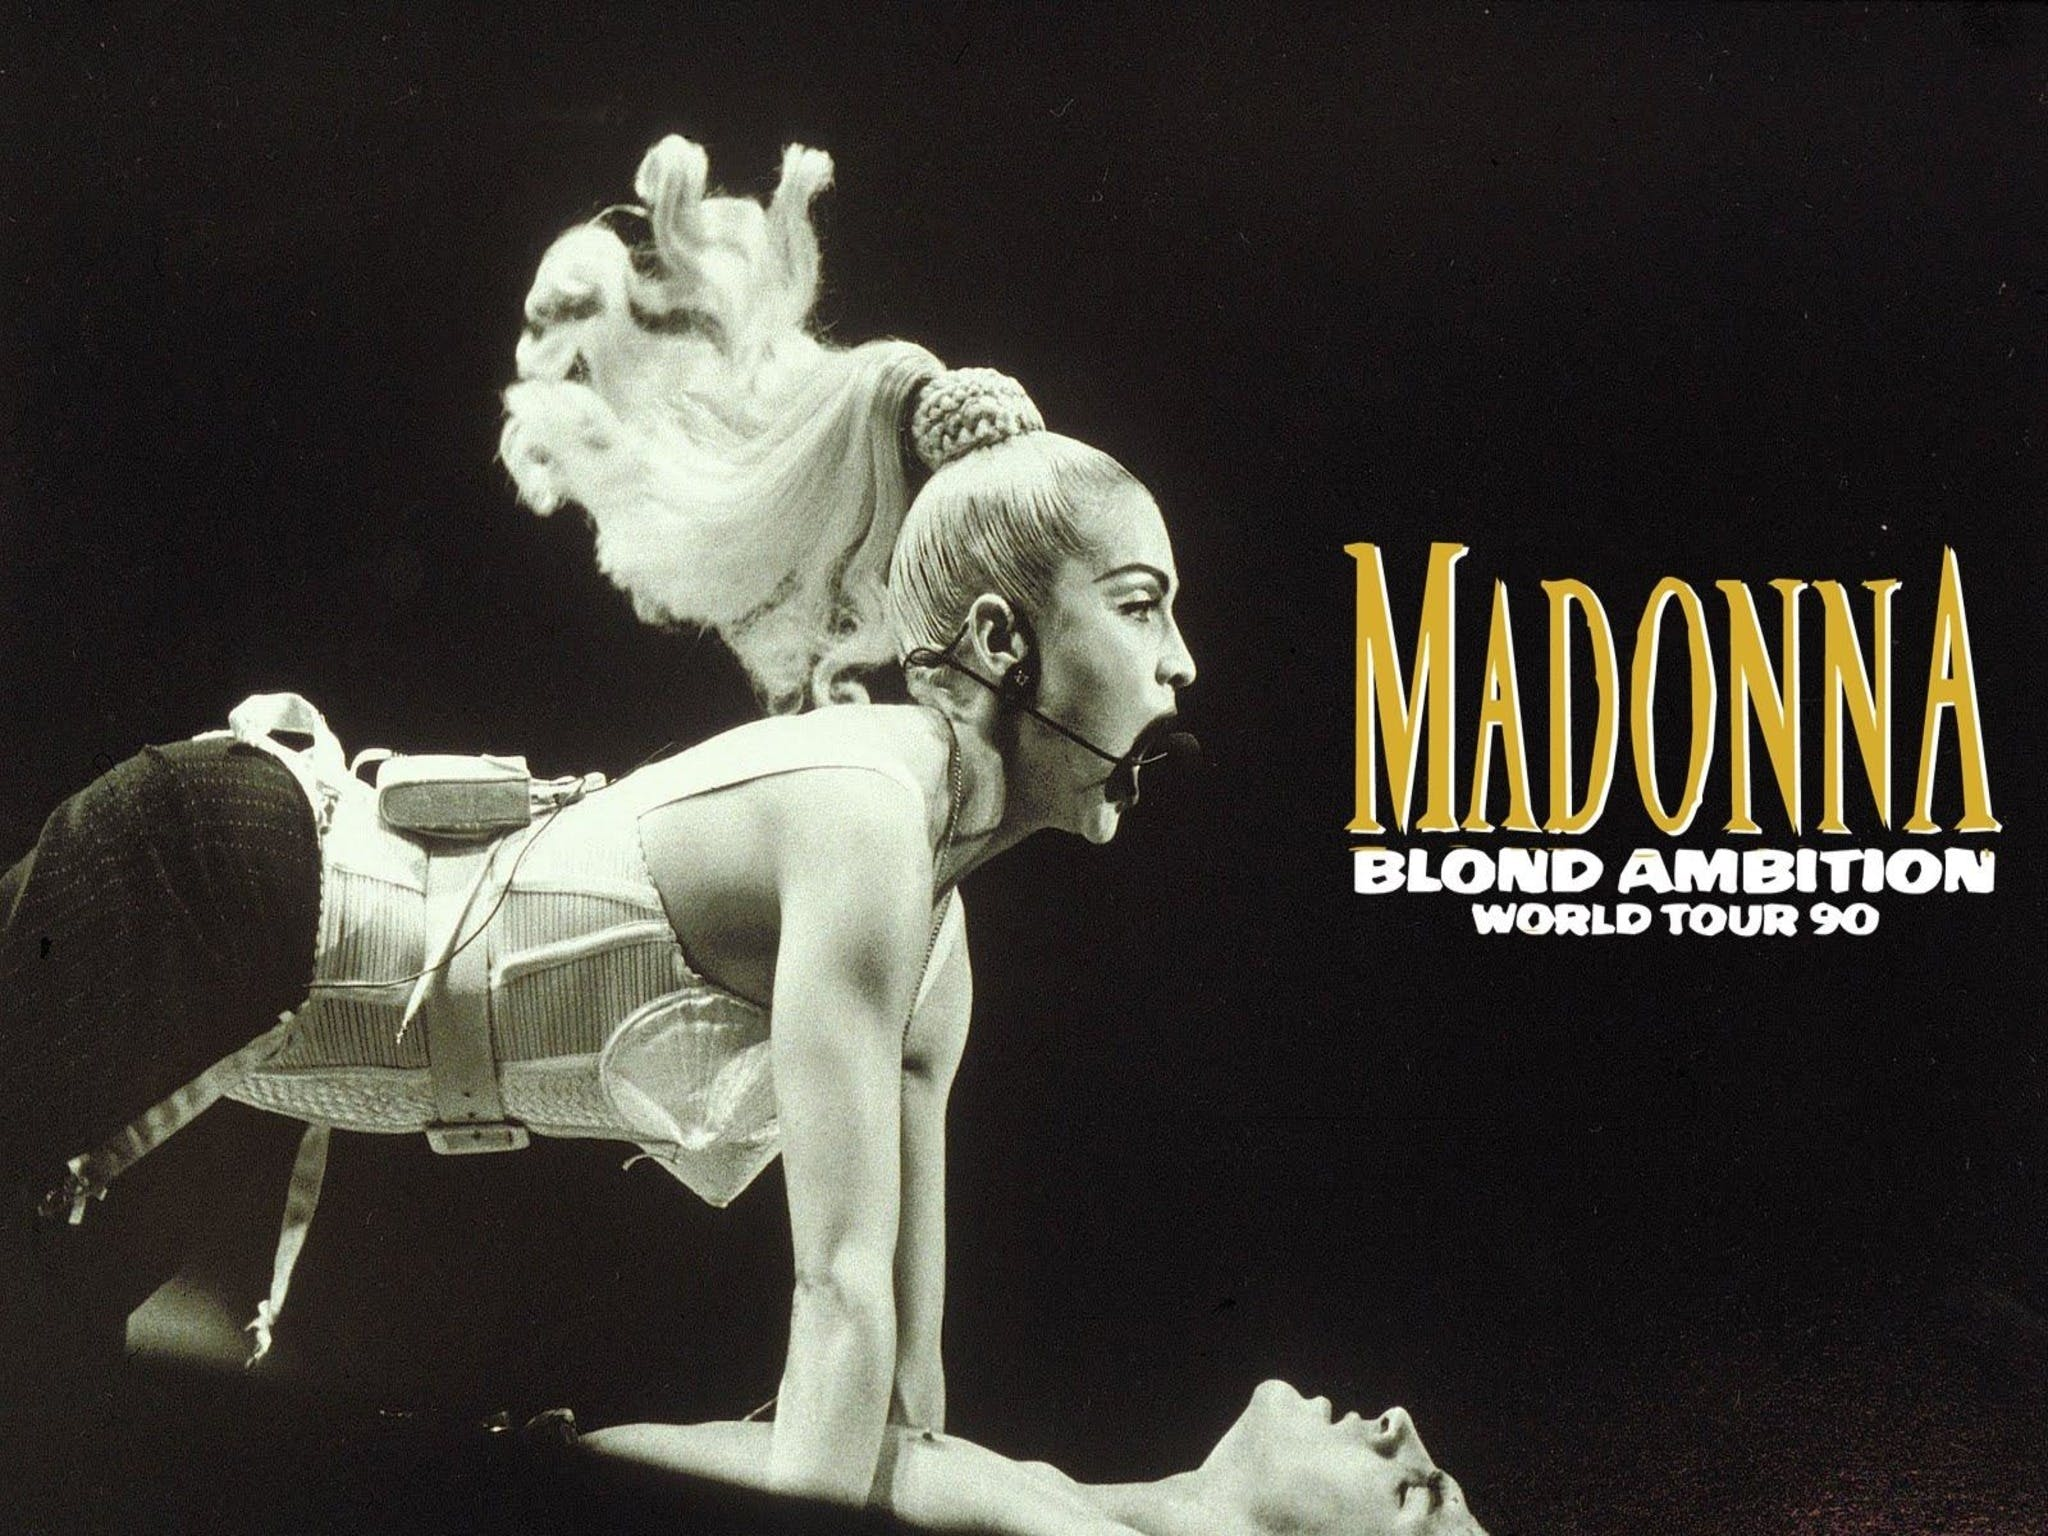 Madonna Blond Ambition Tour - eAccommodation